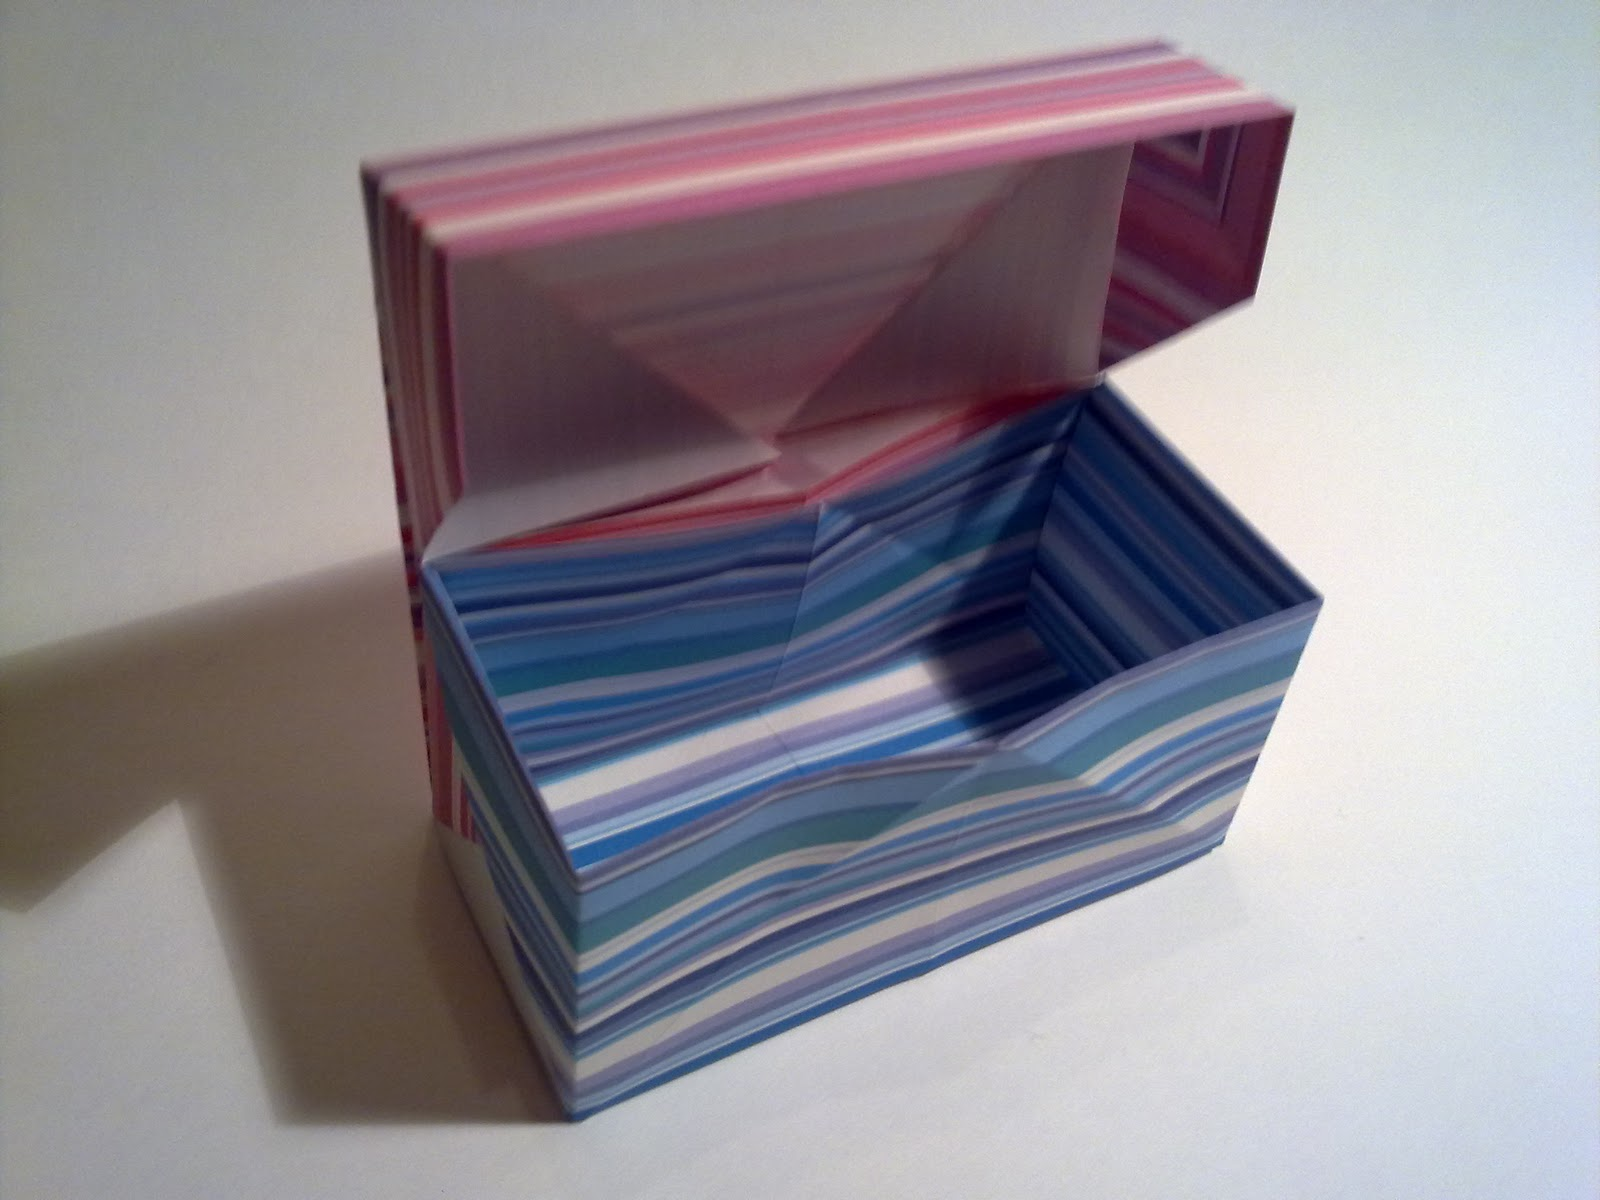 PaperBlog: Origami: Box with Lid